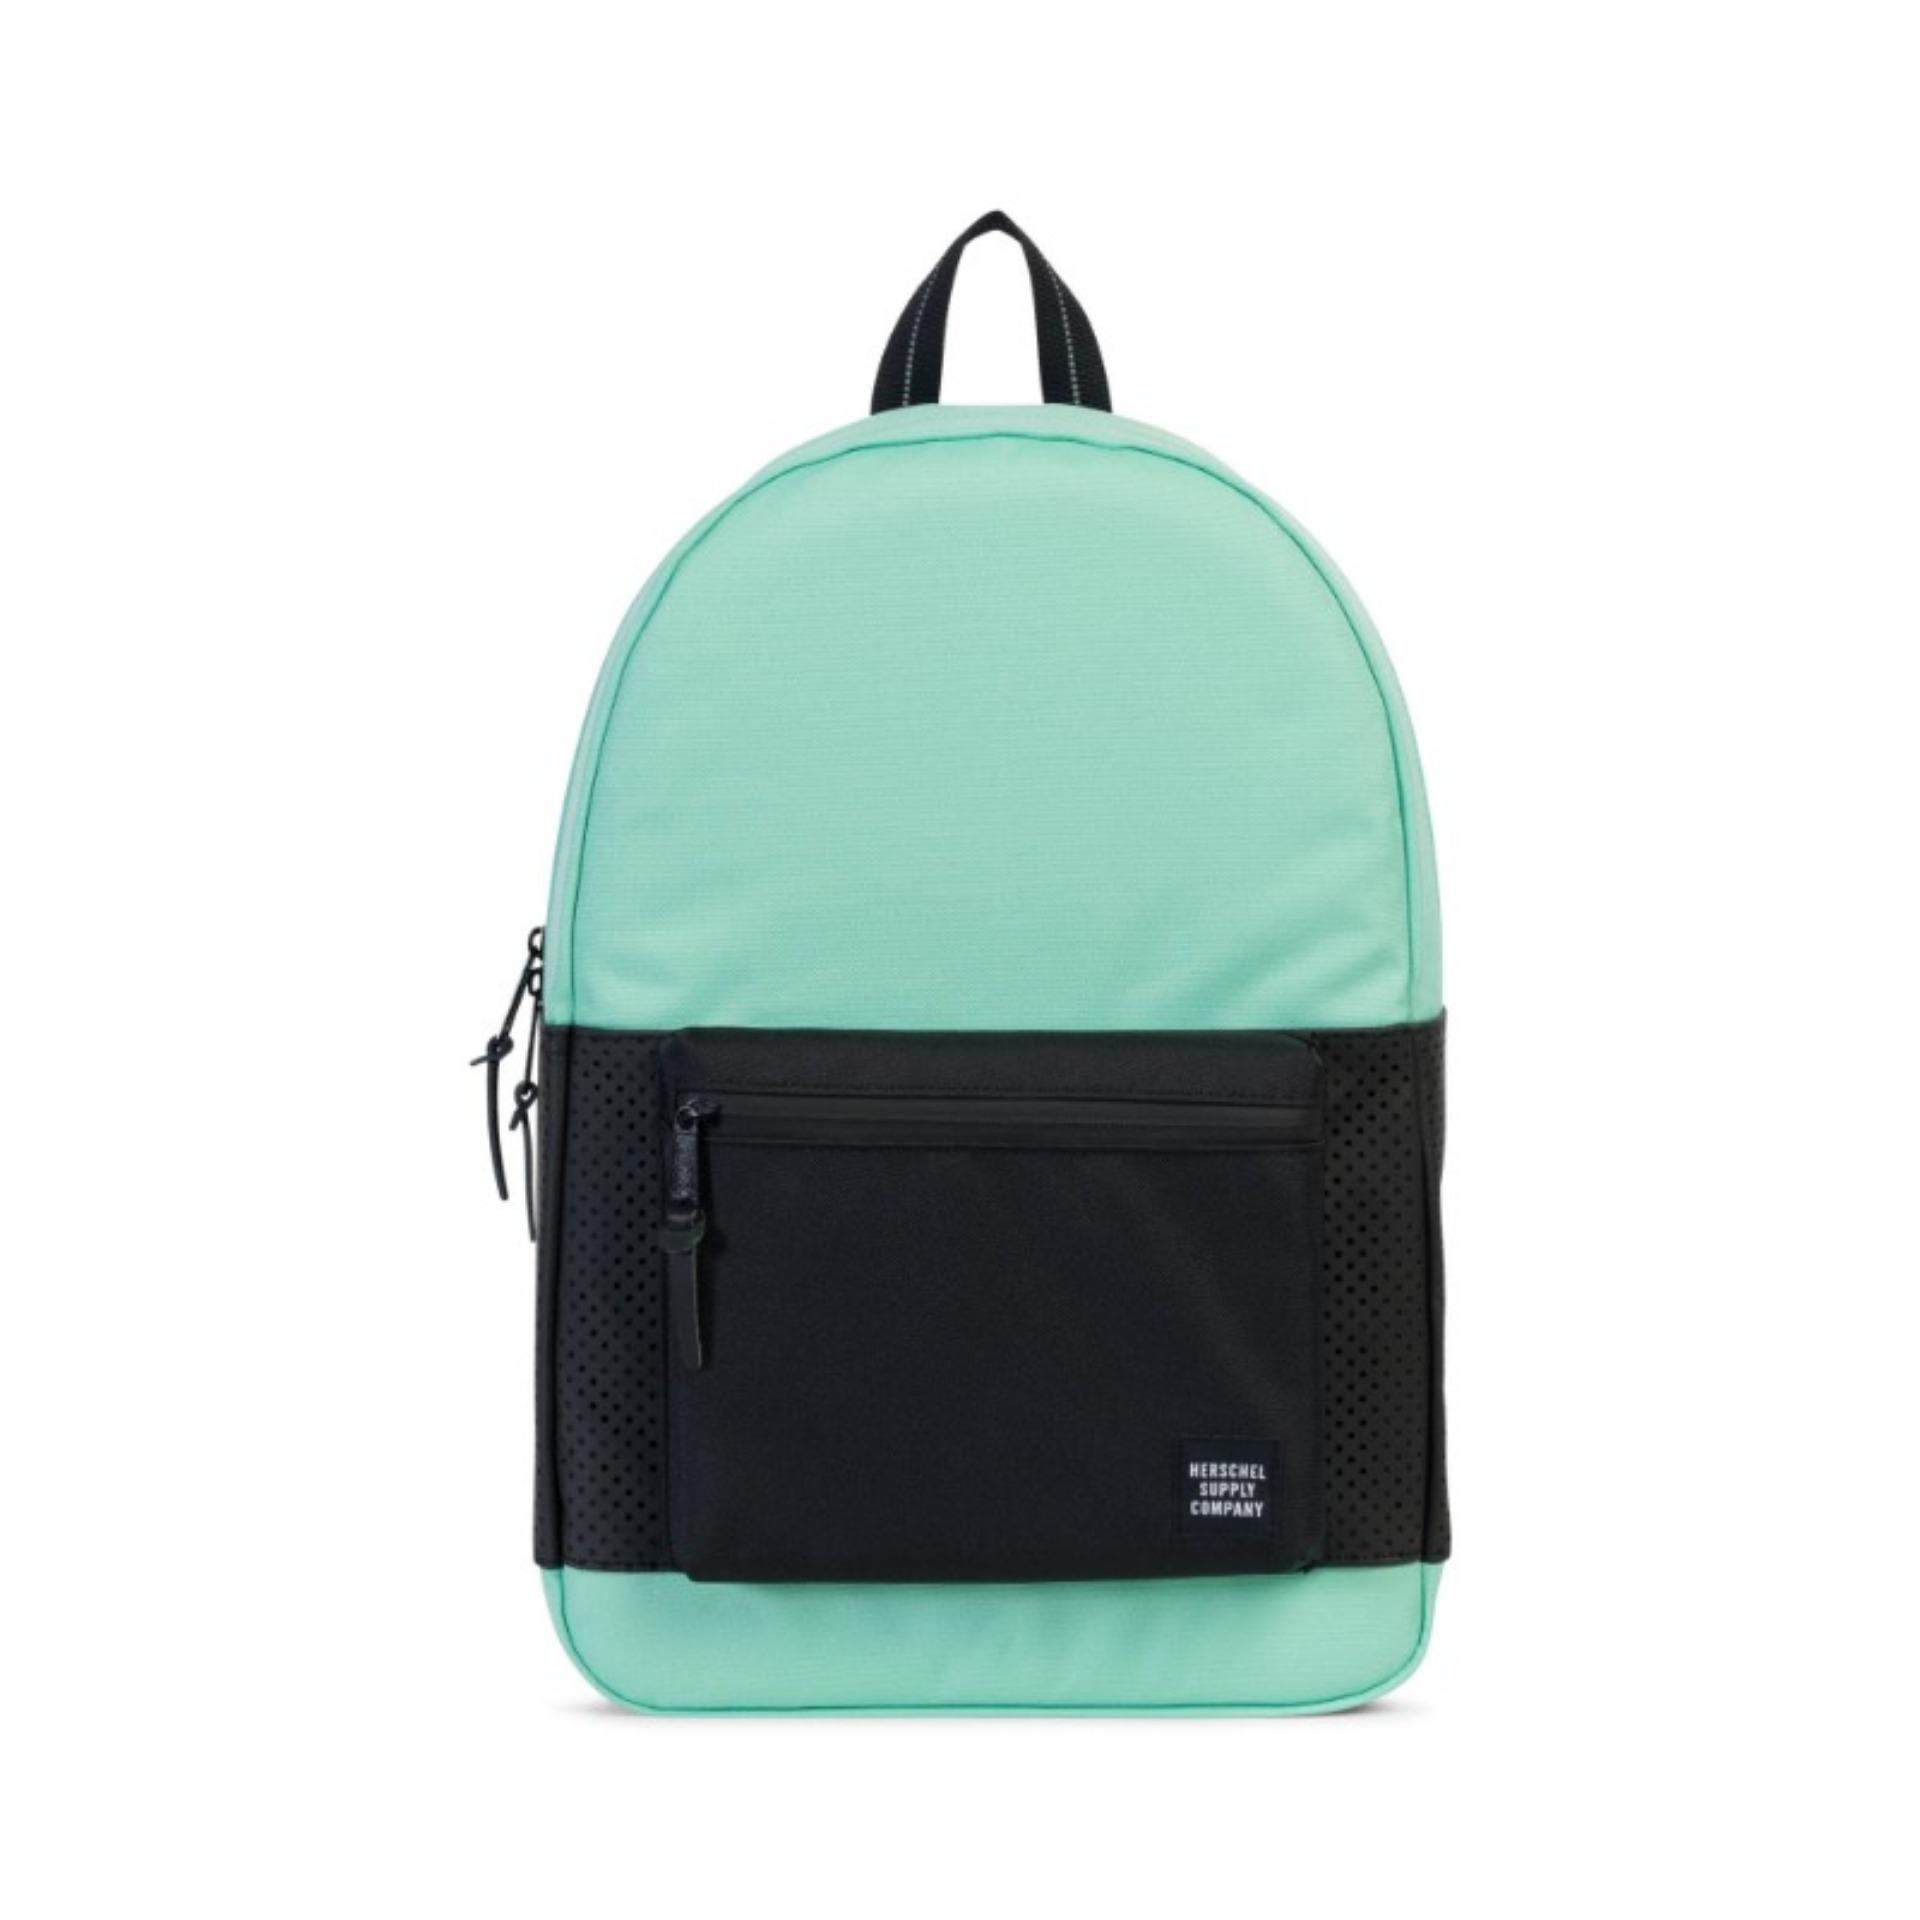 04ae8b65e2f Herschel Supply Co Backpack Blue price in Singapore